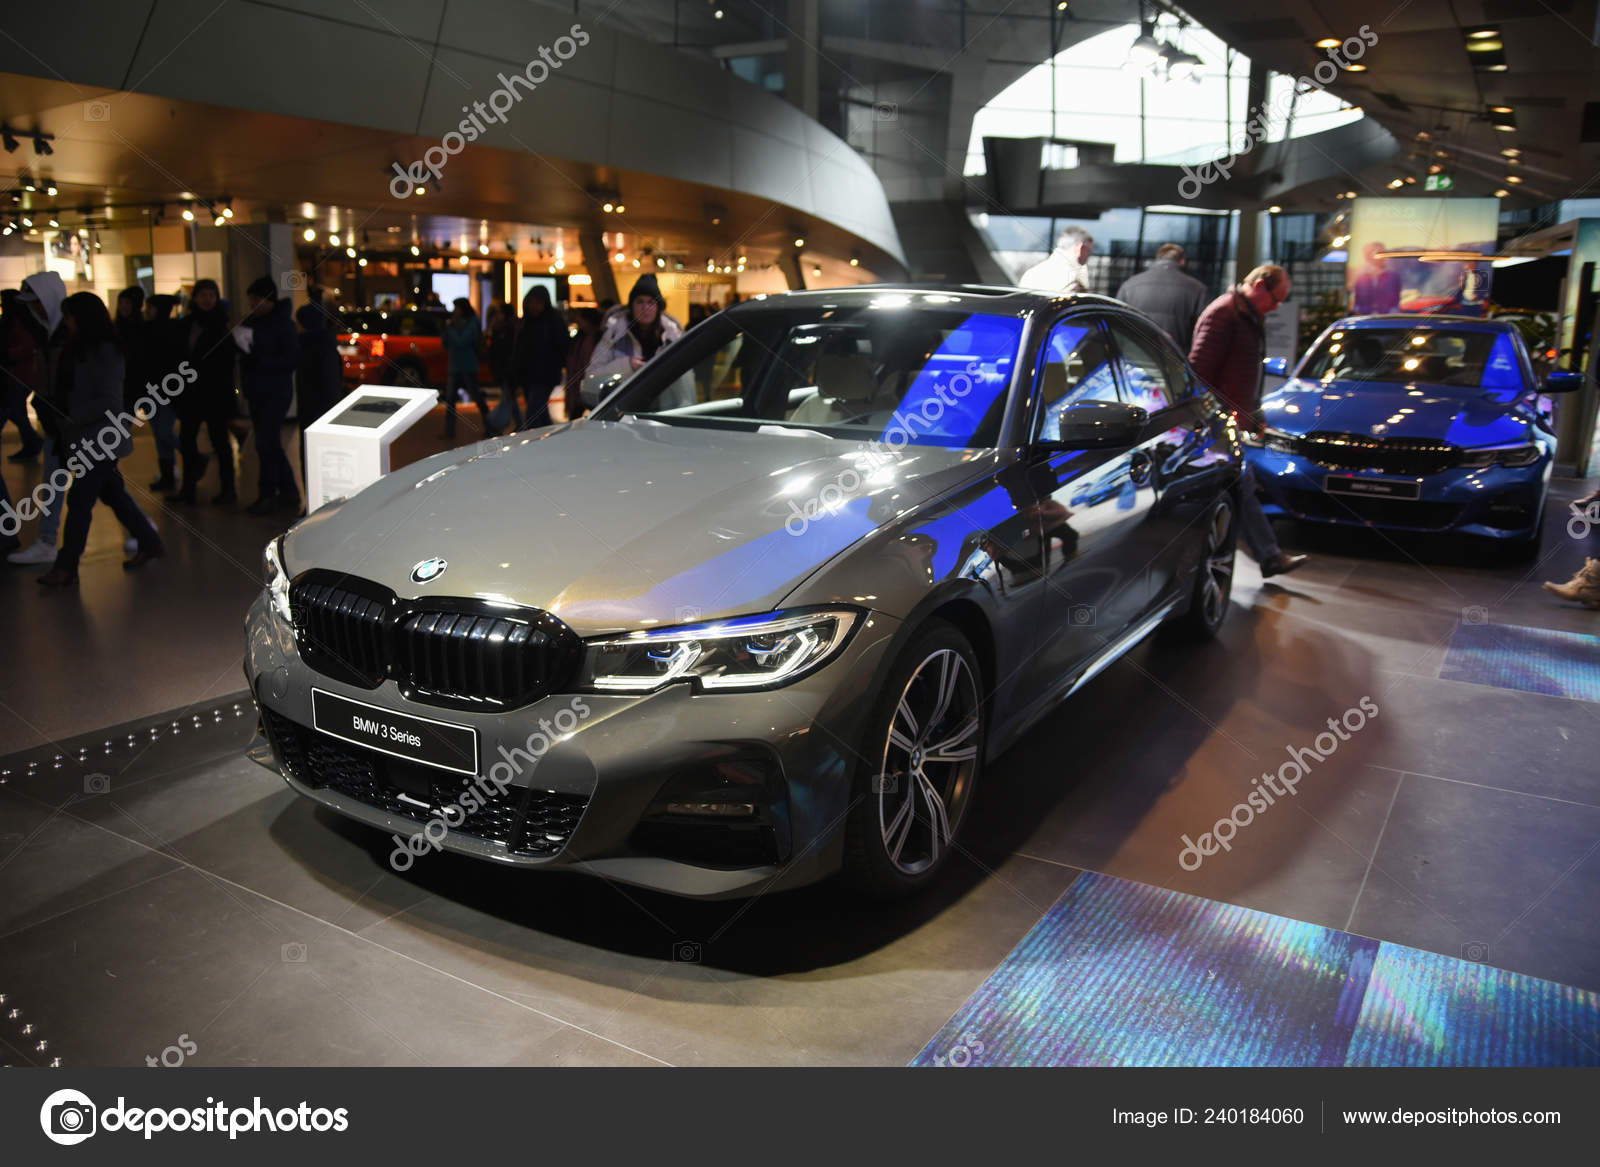 Munich, Germany - December 16, 2018: Exhibition of new